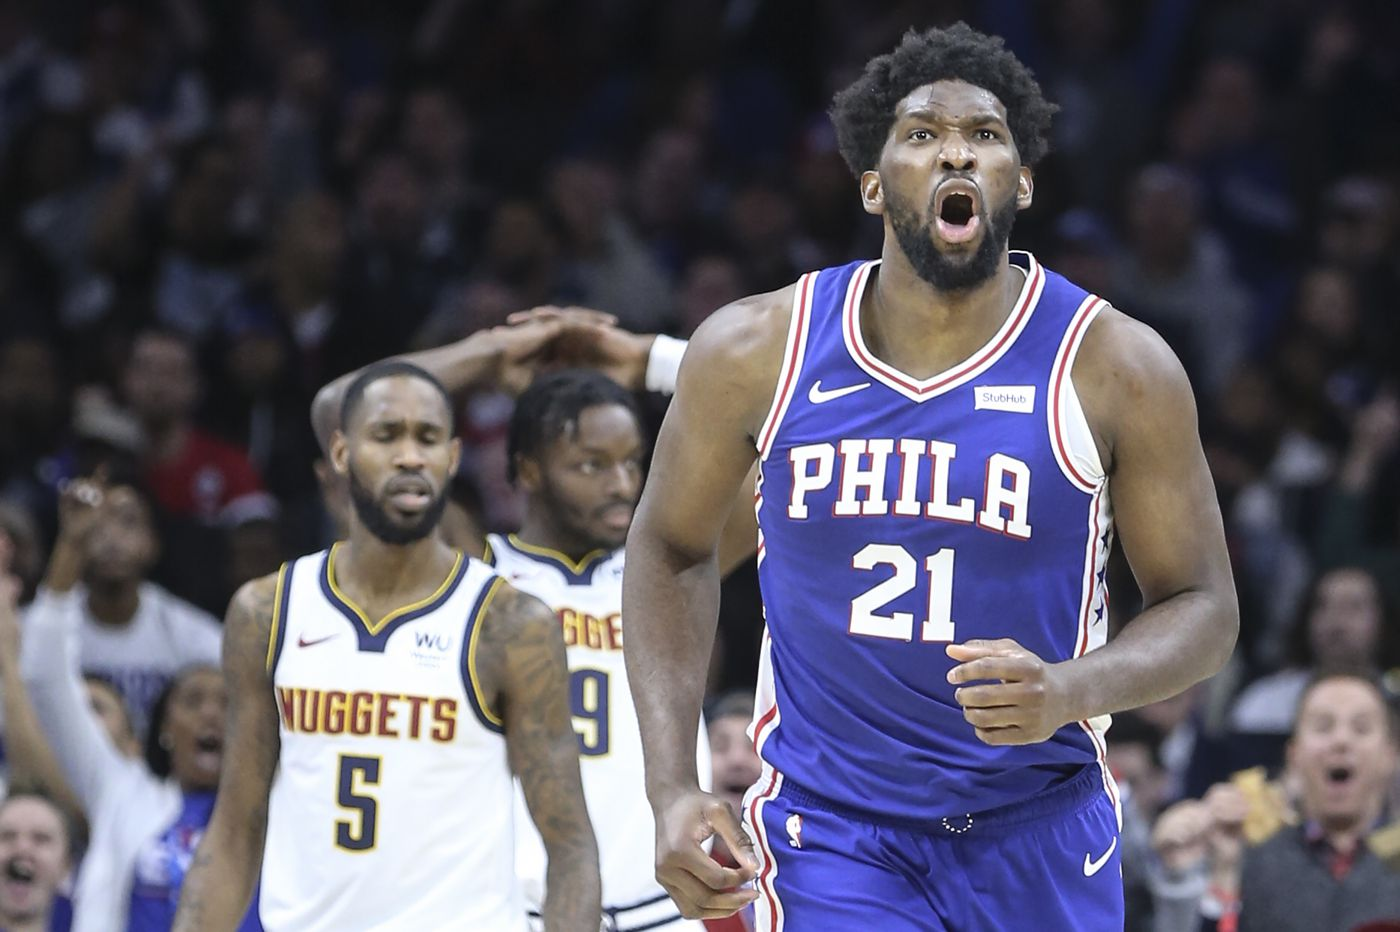 Sixers' Joel Embiid returns to practice, expected to play Wednesday against Miami Heat